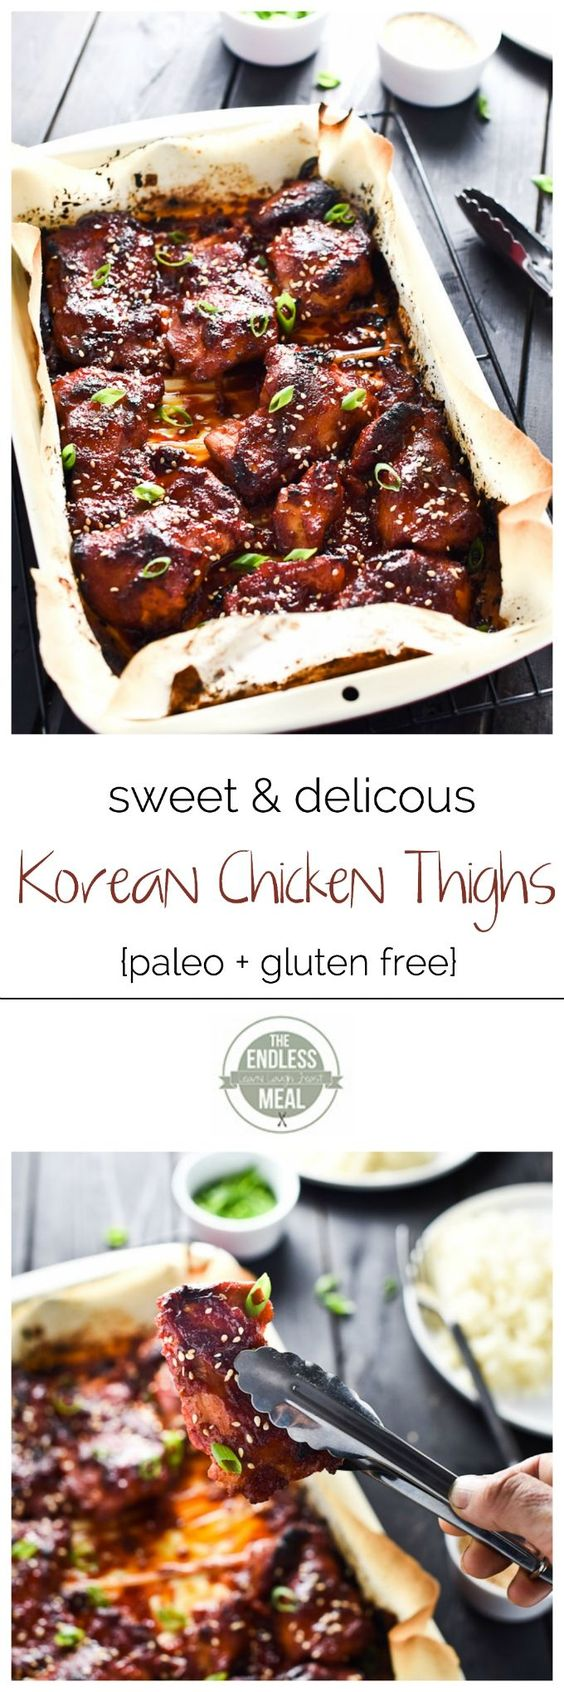 Sweet Korean Paleo Chicken Thighs with Cauliflower Rice | A super easy to make and incredibly delicious paleo meal your whole family will love! | http://theendlessmeal.com